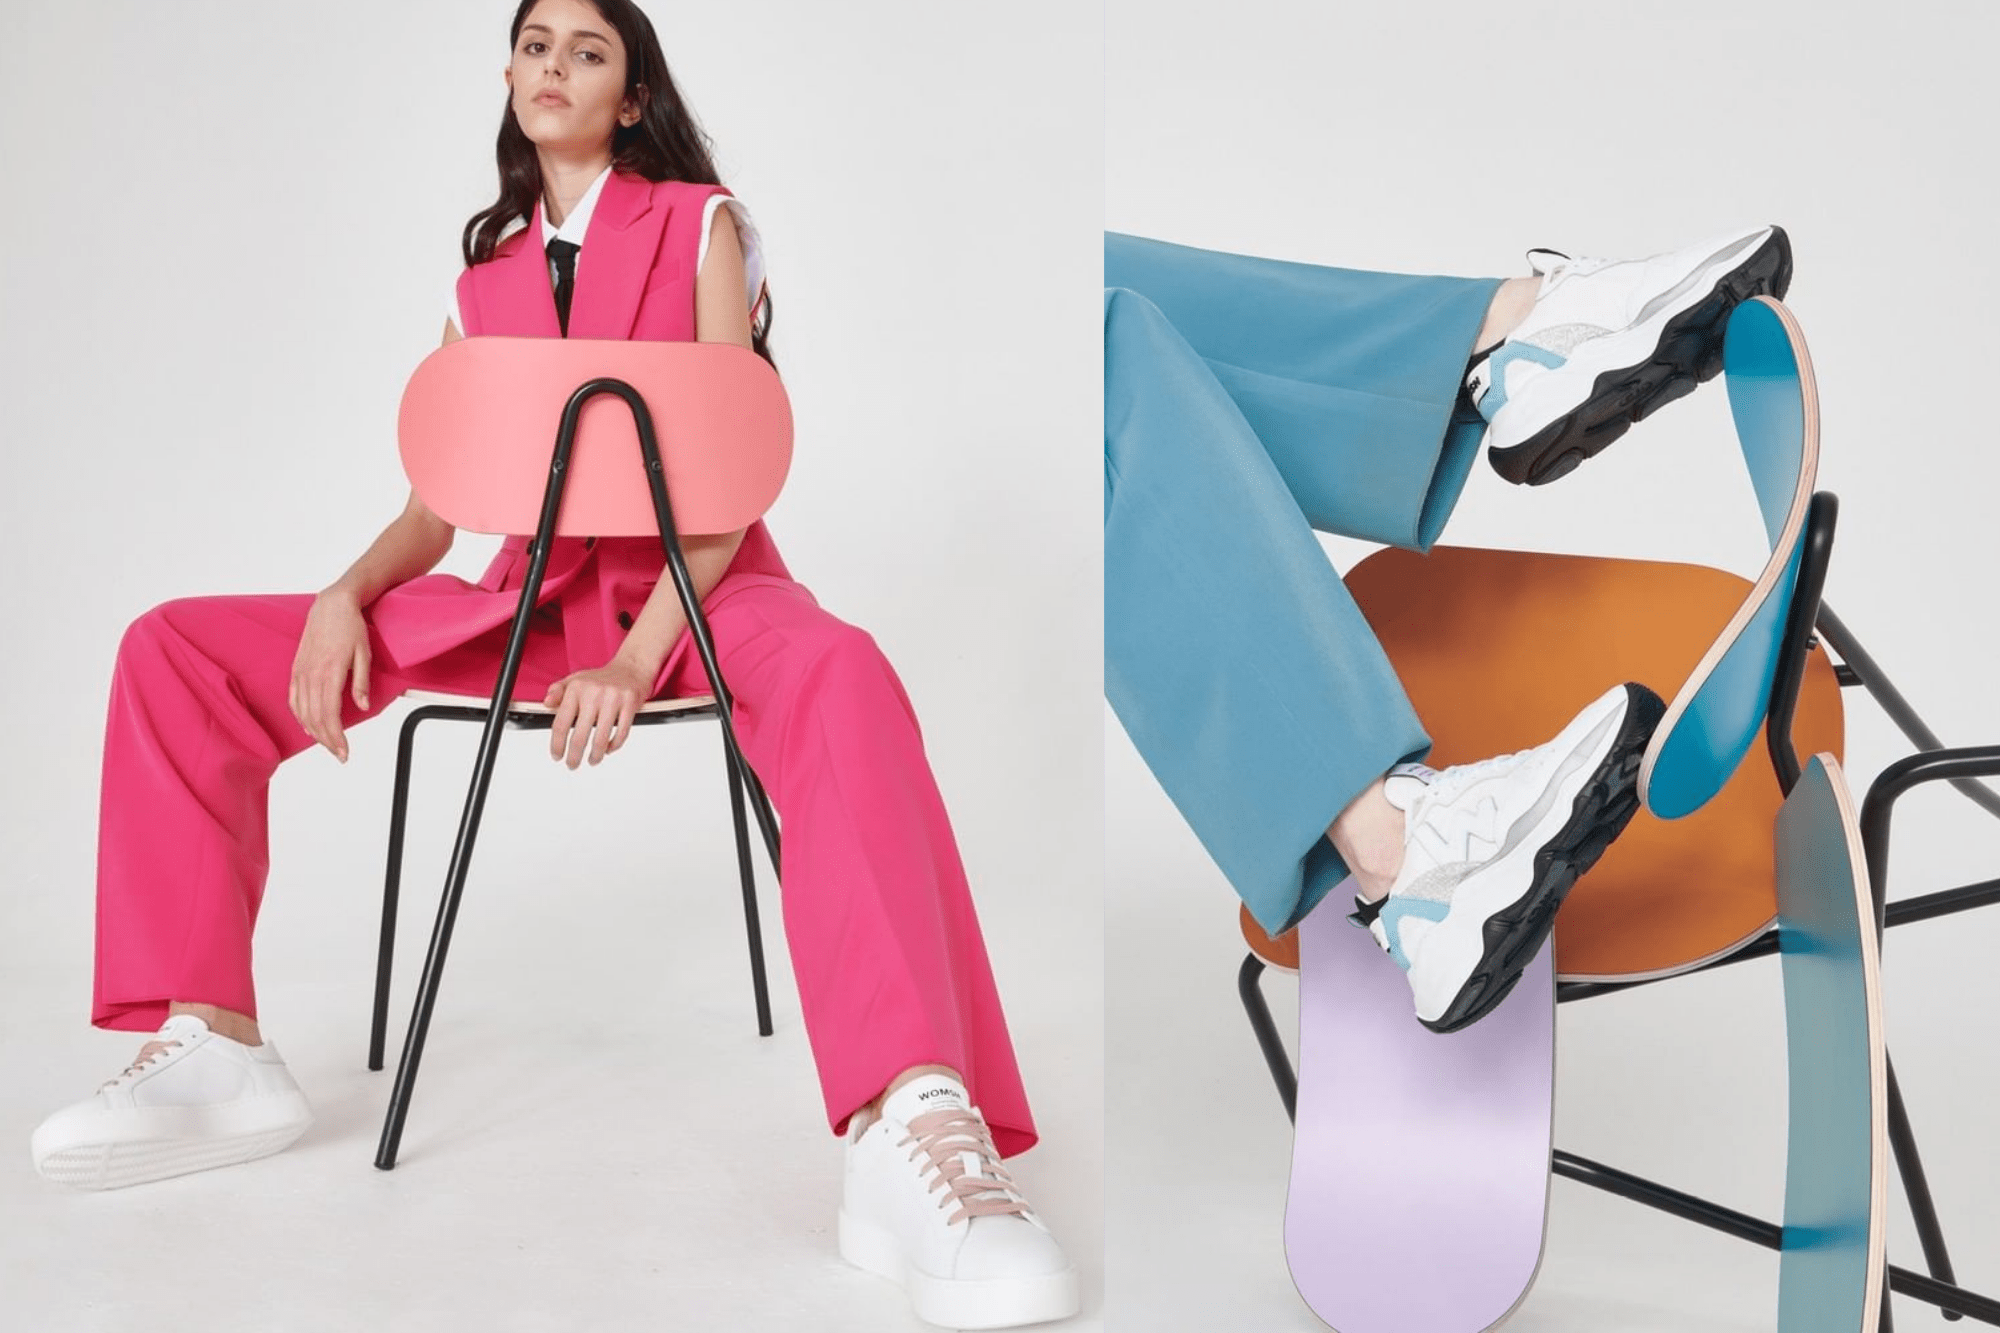 Sneakers: innovation and sustainability according to WOMSH's founder